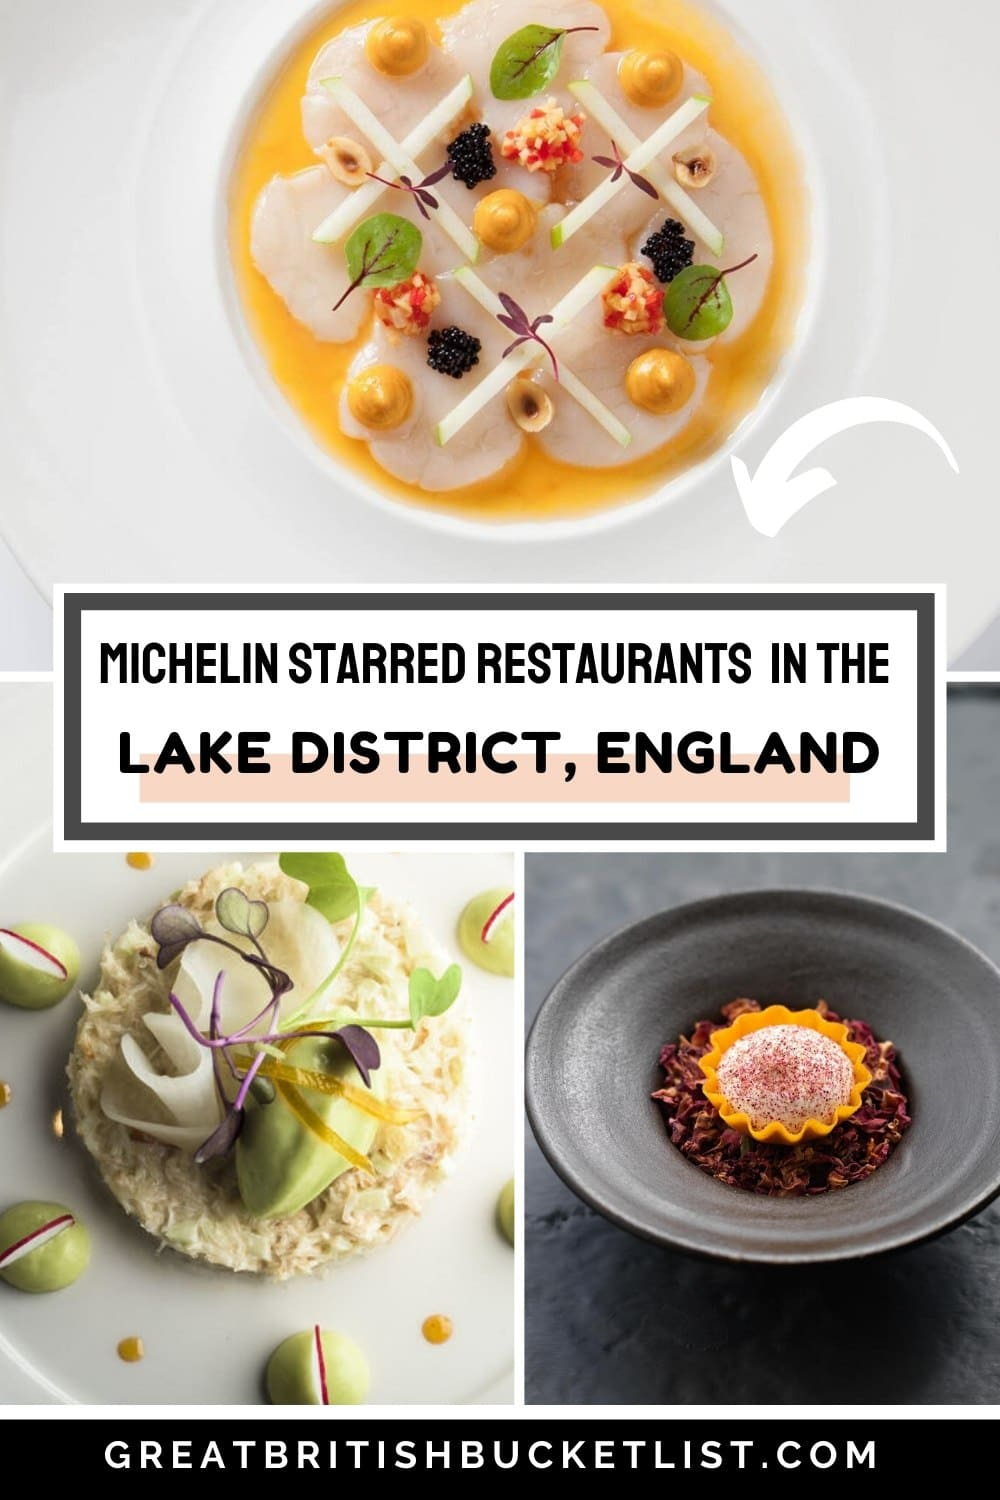 Michelin Starred restaurants in the Lake District